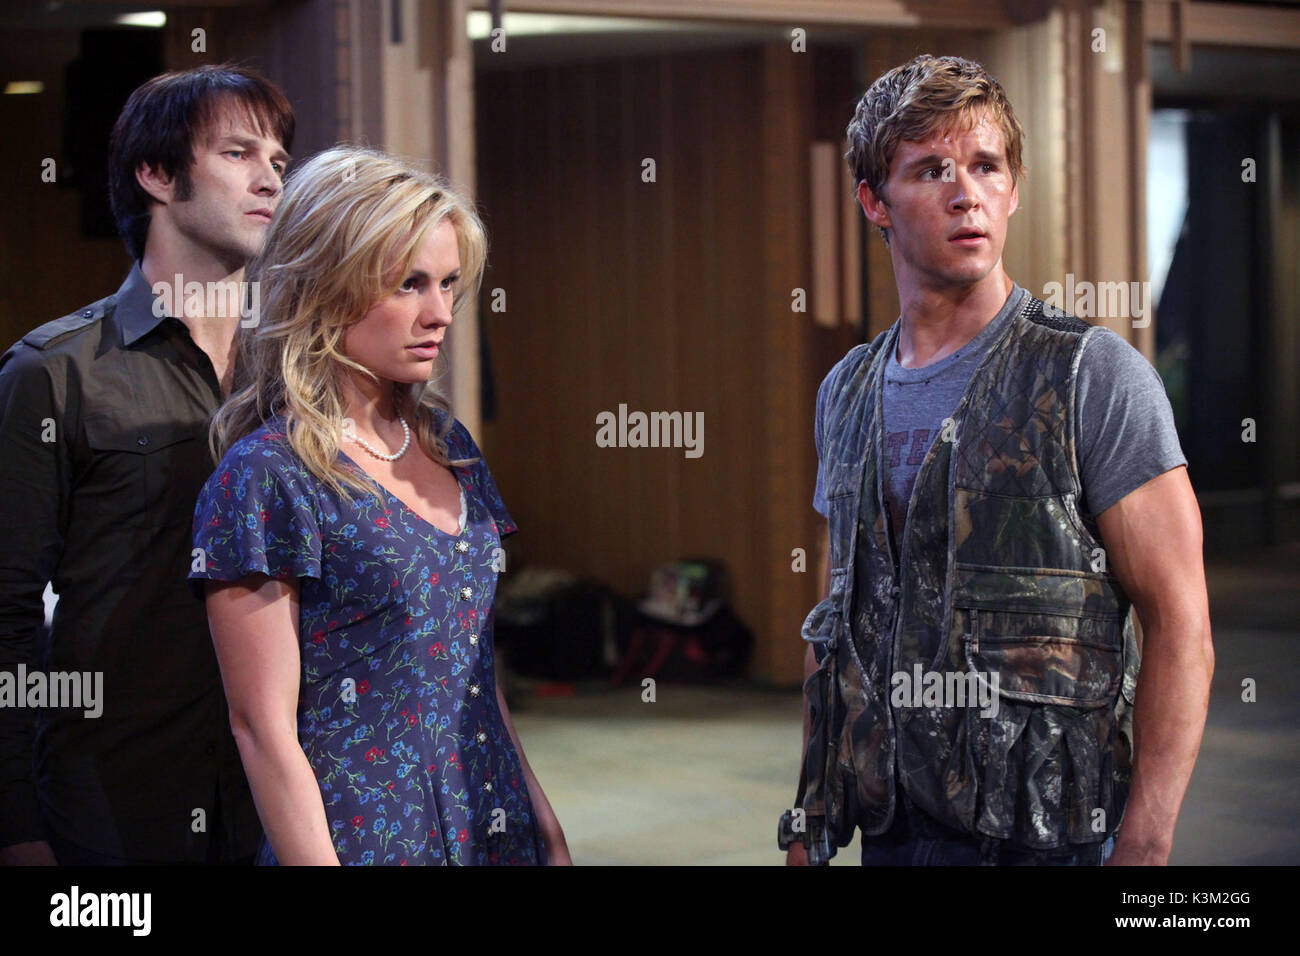 TRUE BLOOD Series,2 / Episode,8 / Timebomb STEPHEN MOYER as Bill Compton, ANNA PAQUIN as Sookie Stackhouse, RYAN - Stock Image